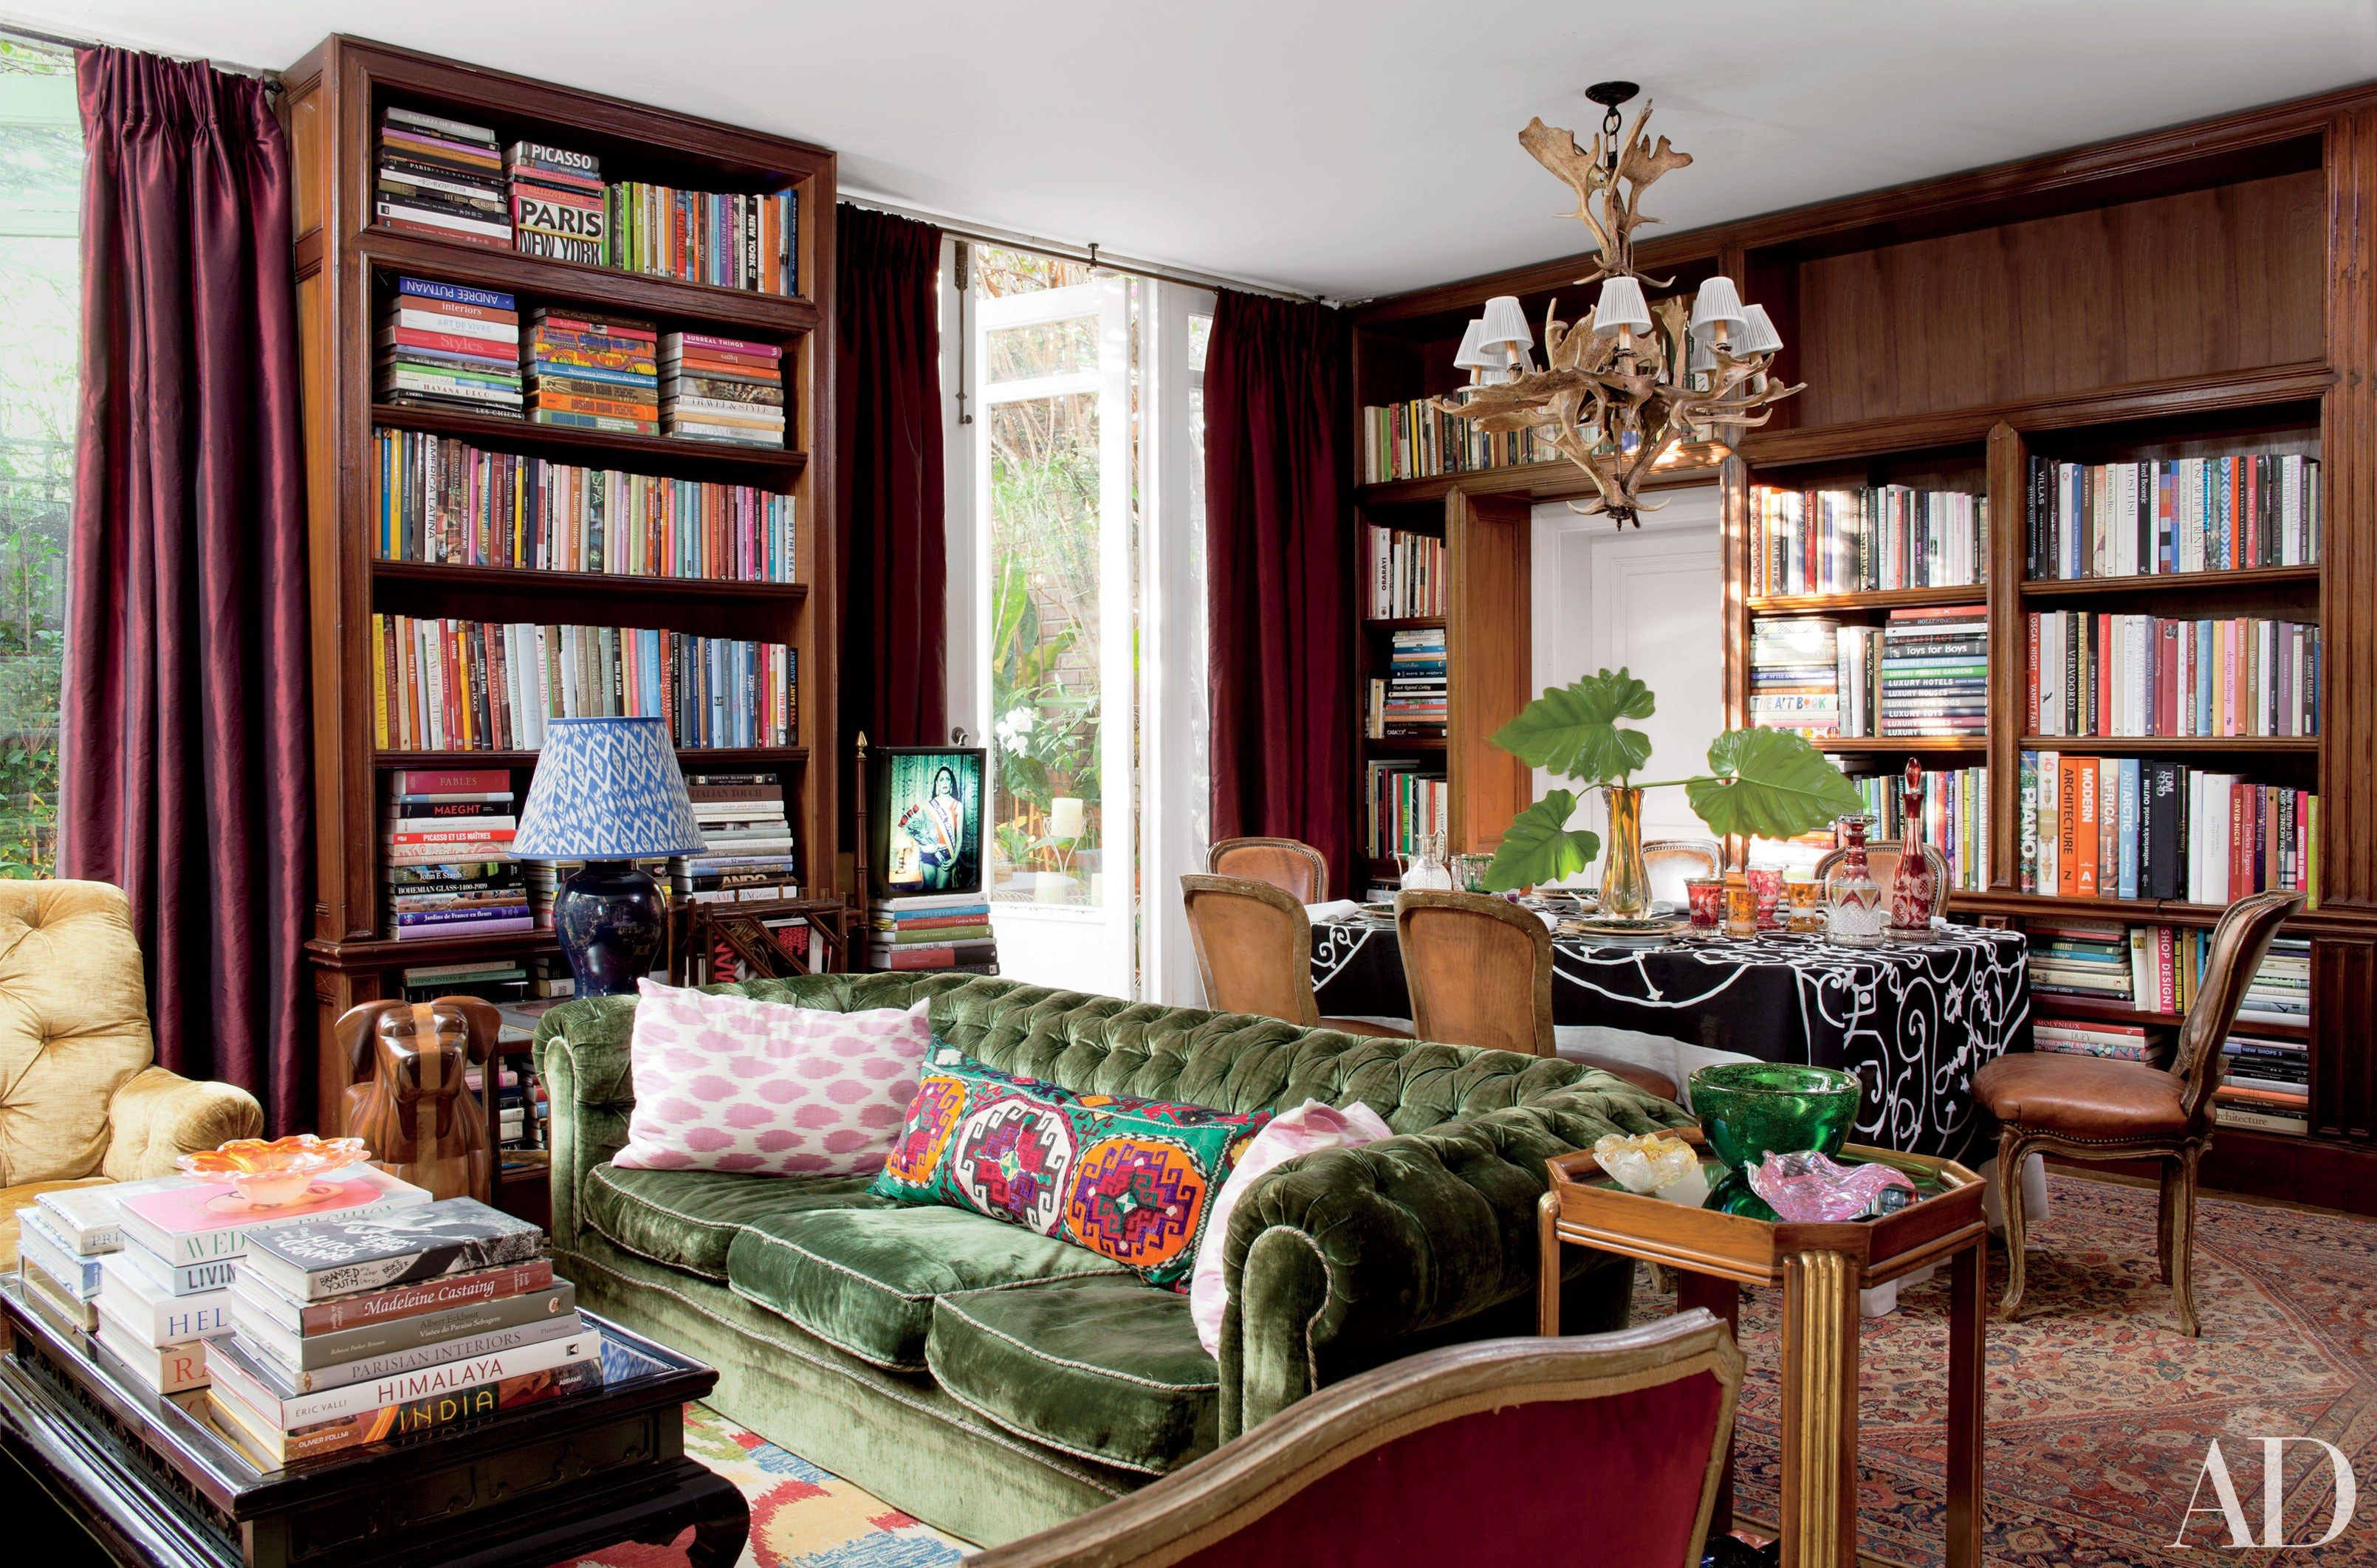 Home Library Bookshelf Design Photos - Architectural Digest The Indian